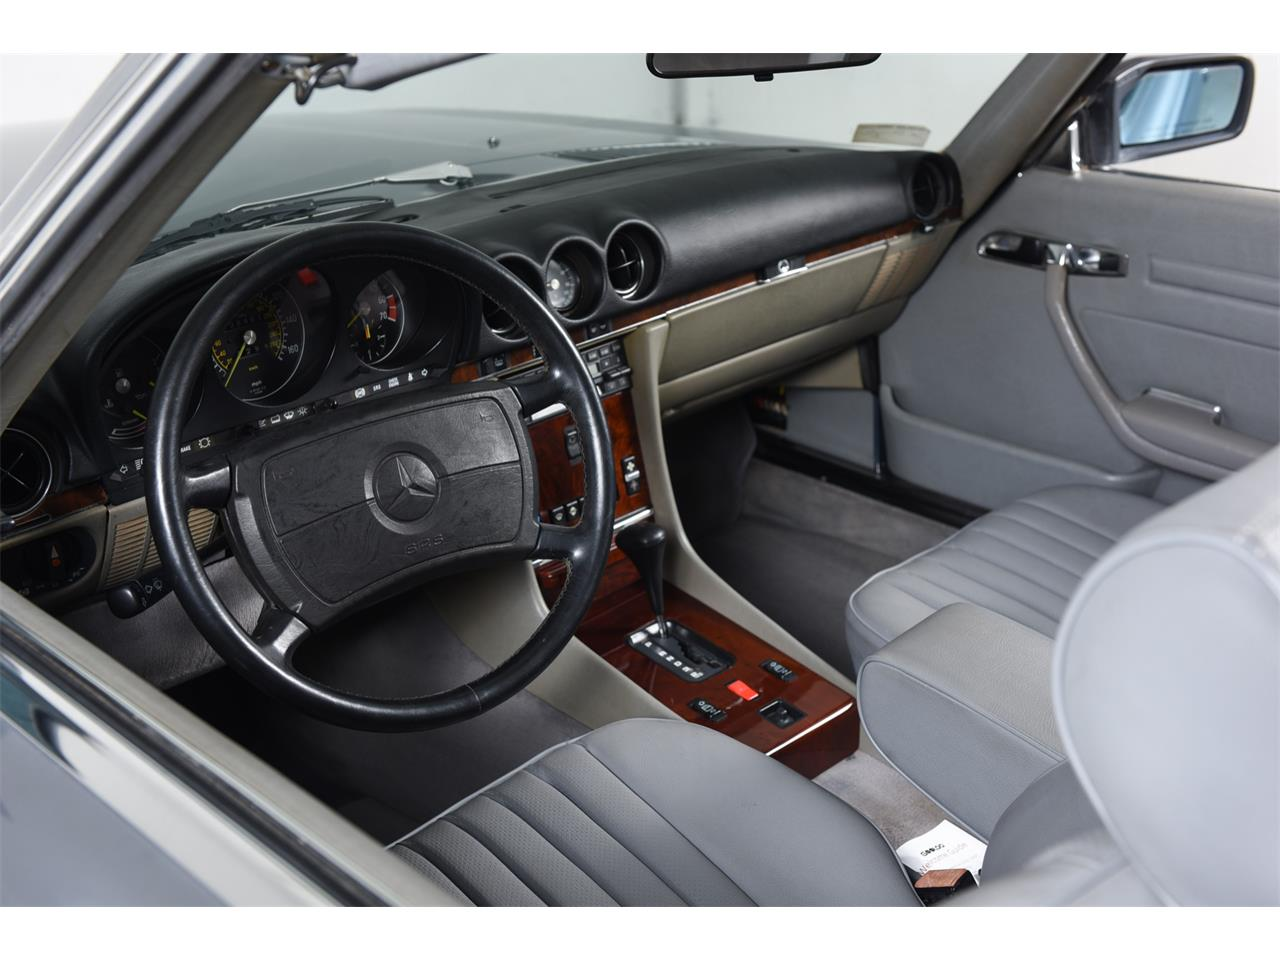 1988 Mercedes-Benz 560 for sale in Farmingdale, NY – photo 22